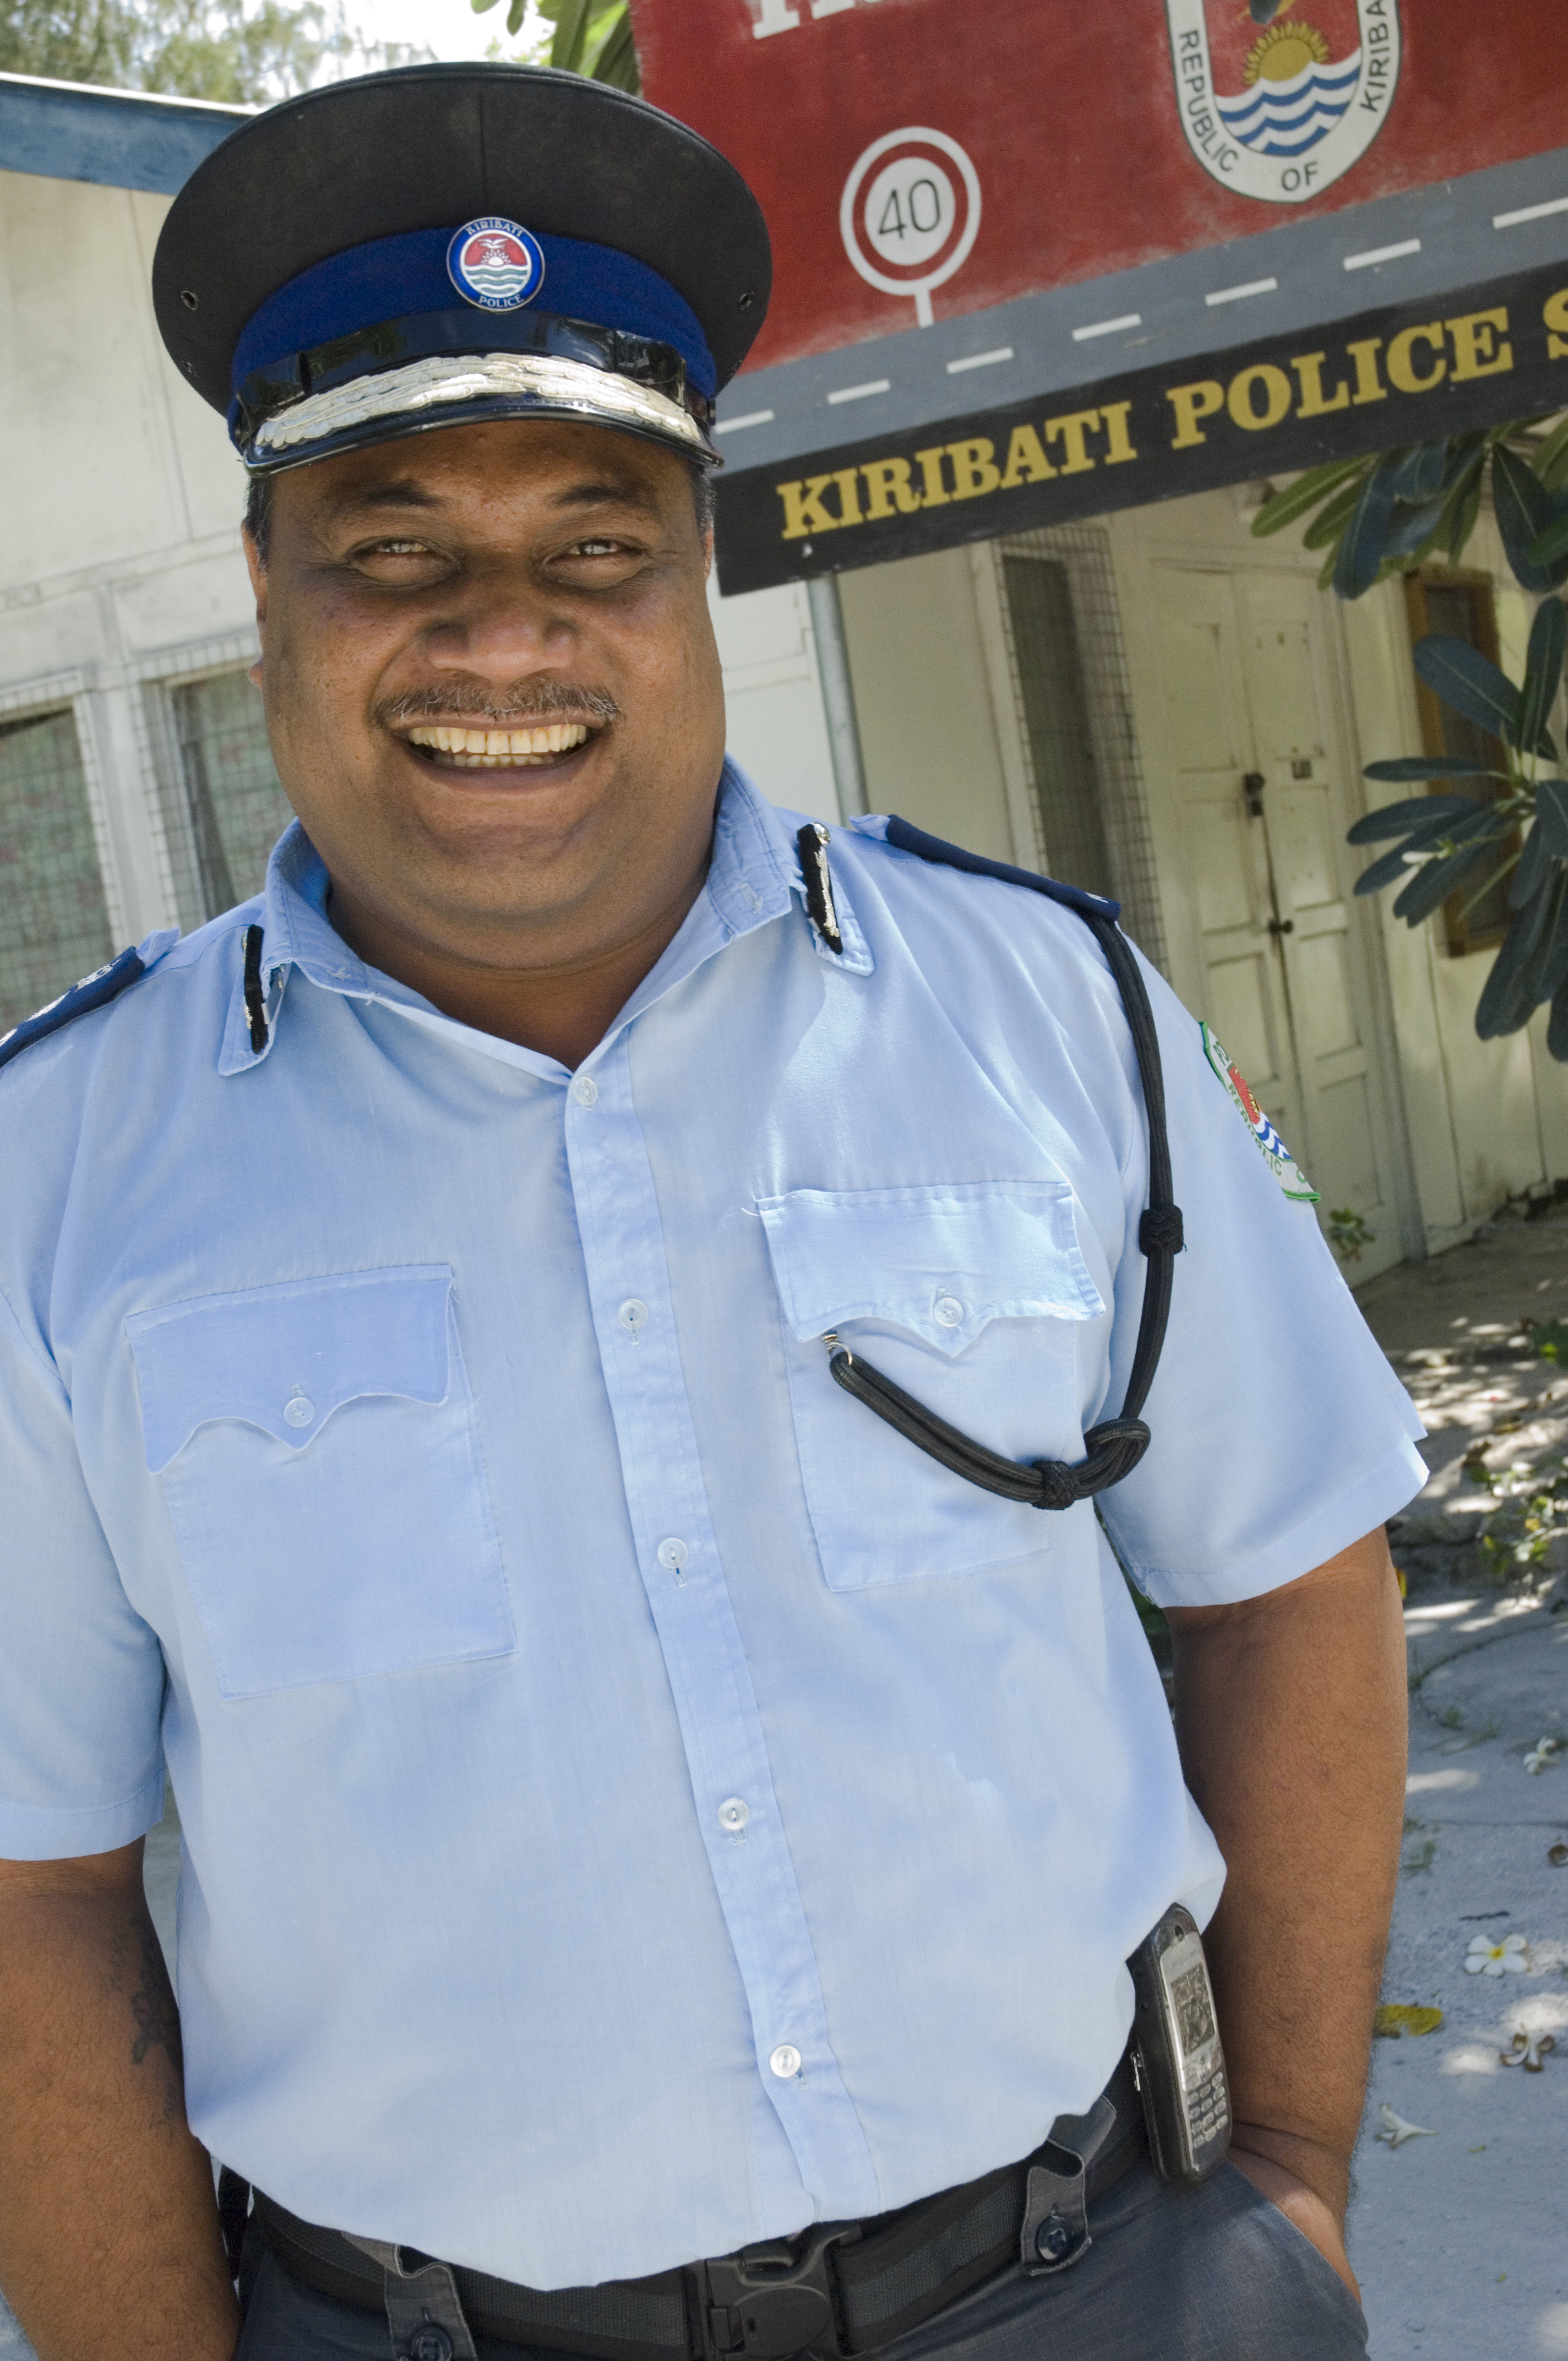 Australian Scholarship recipient Commissioner of Police Ioeru Tokantetaake in Kiribati. Image by Lorrie Graham for DFAT